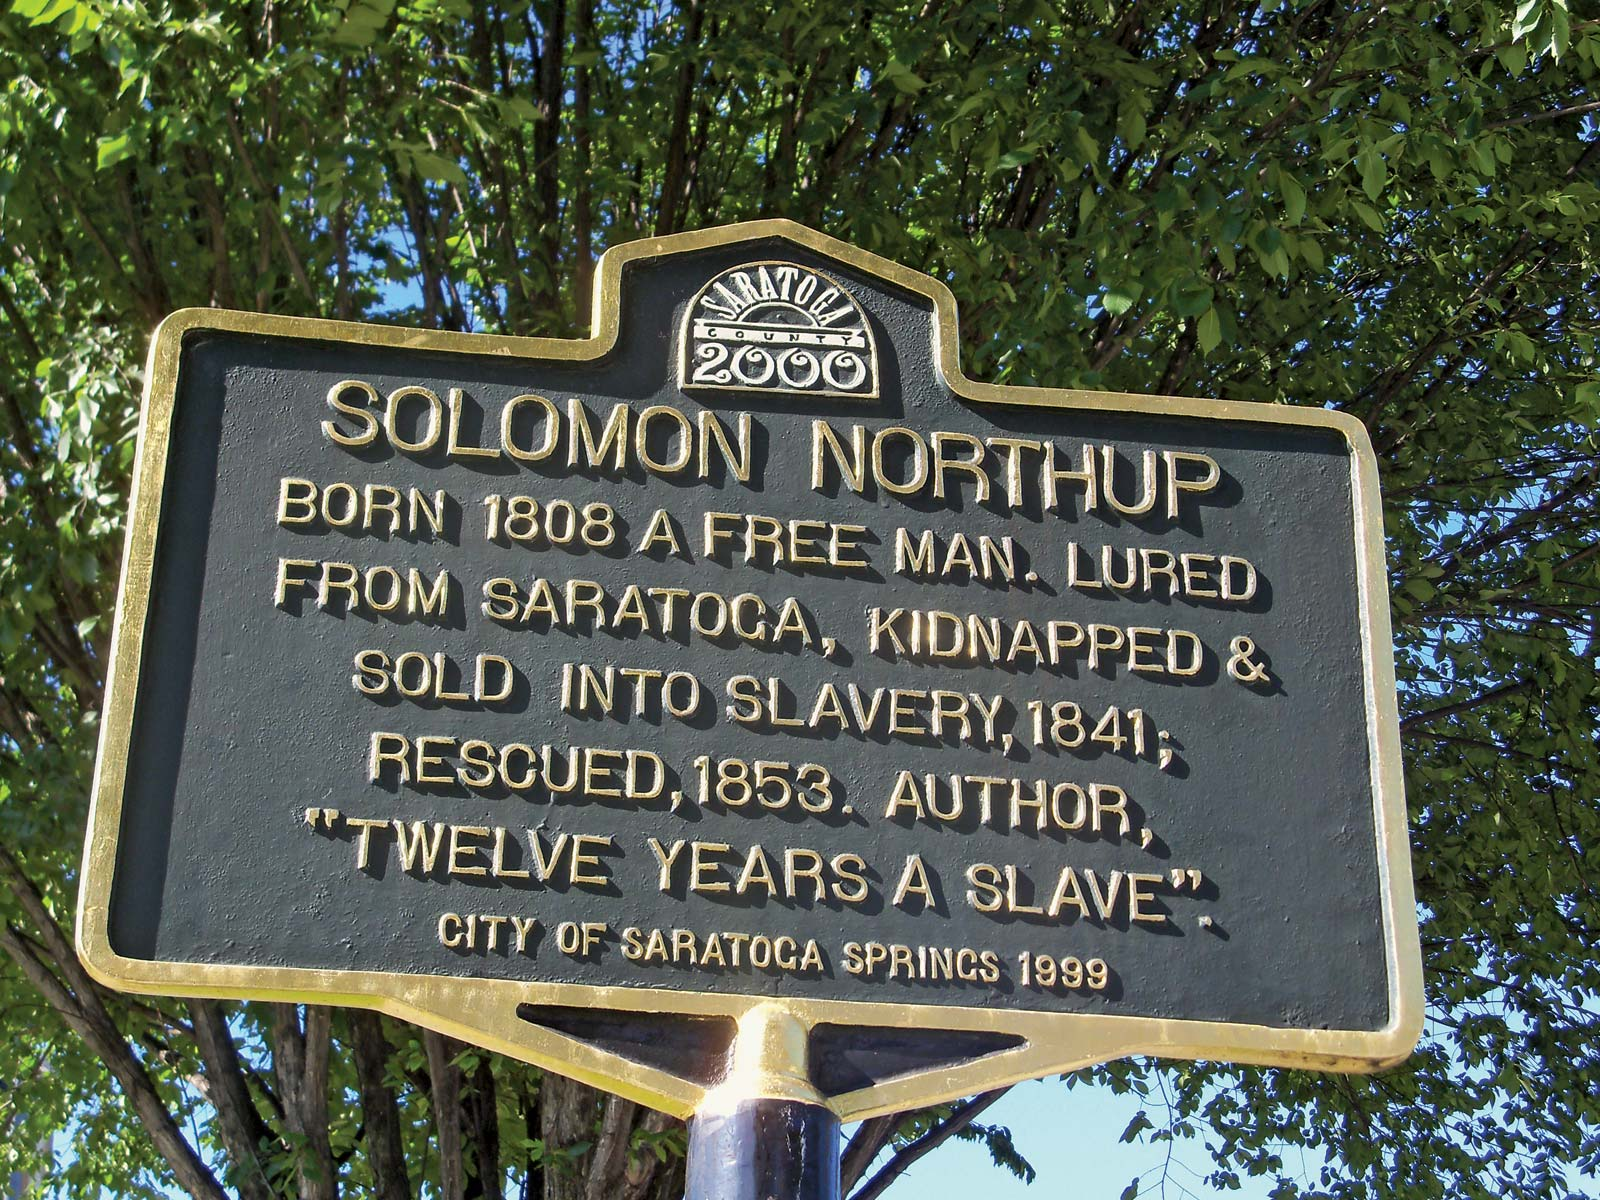 Salomon Northup